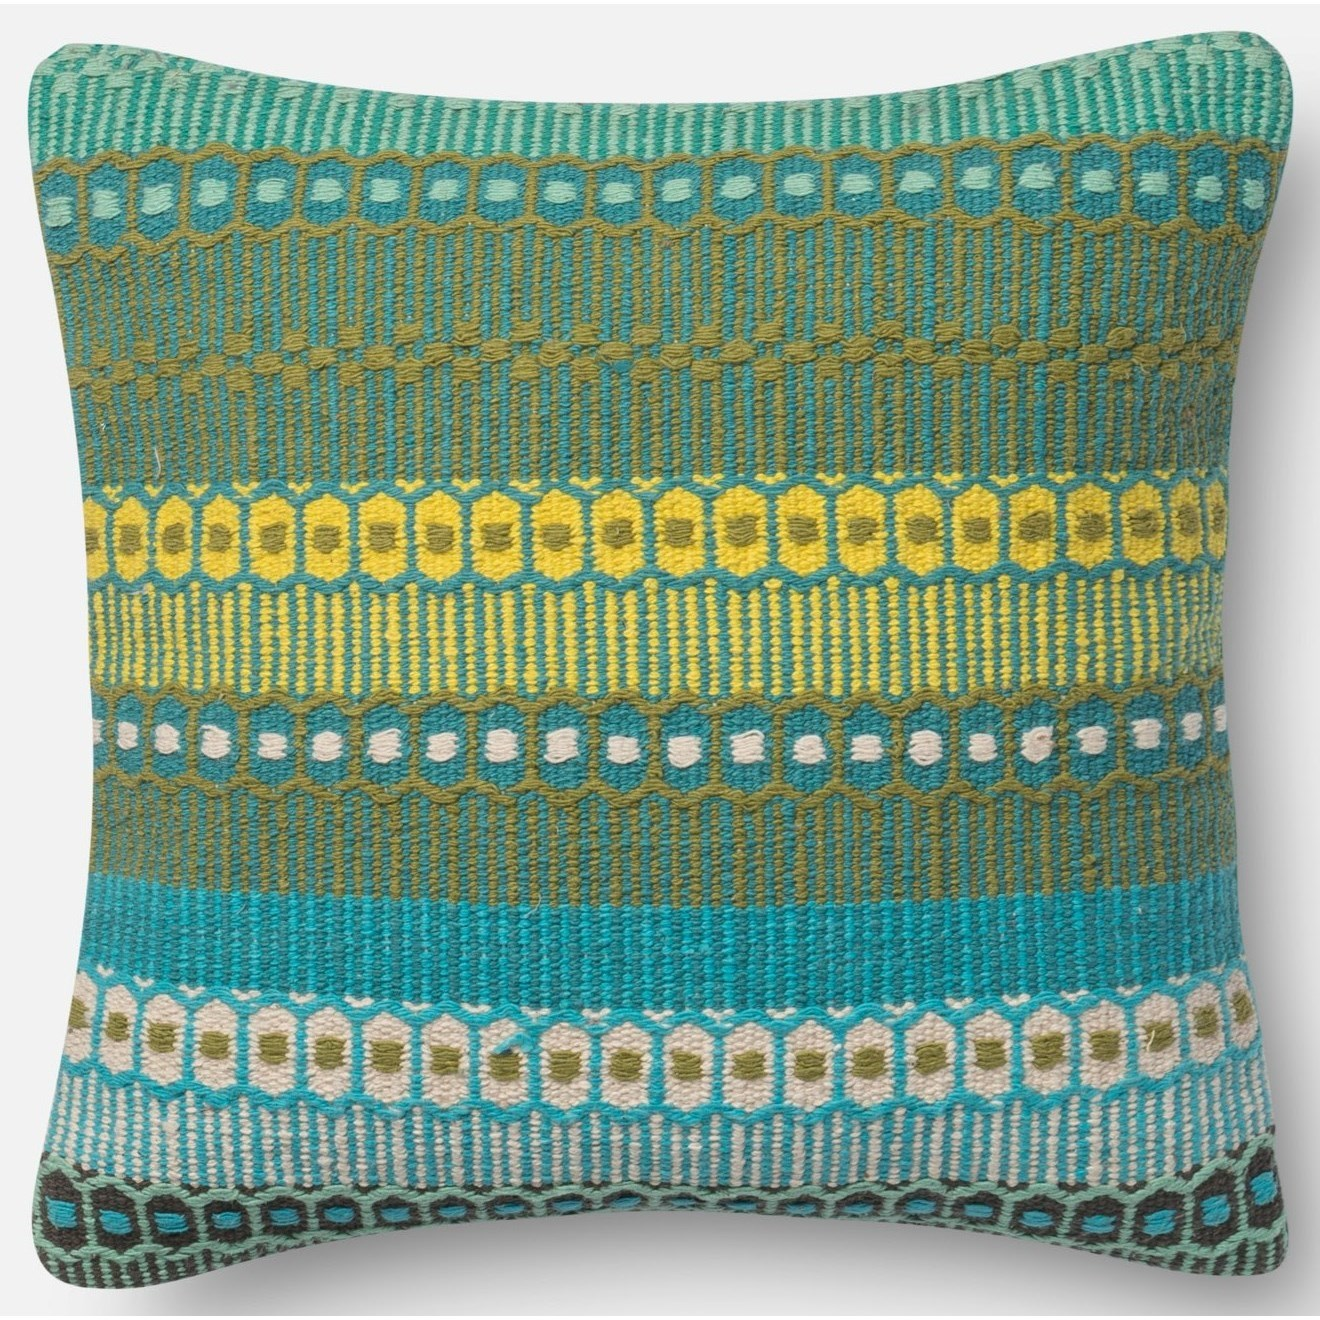 "Accent Pillows 18"" X 18"" Cover w/Poly by Loloi Rugs at Sprintz Furniture"